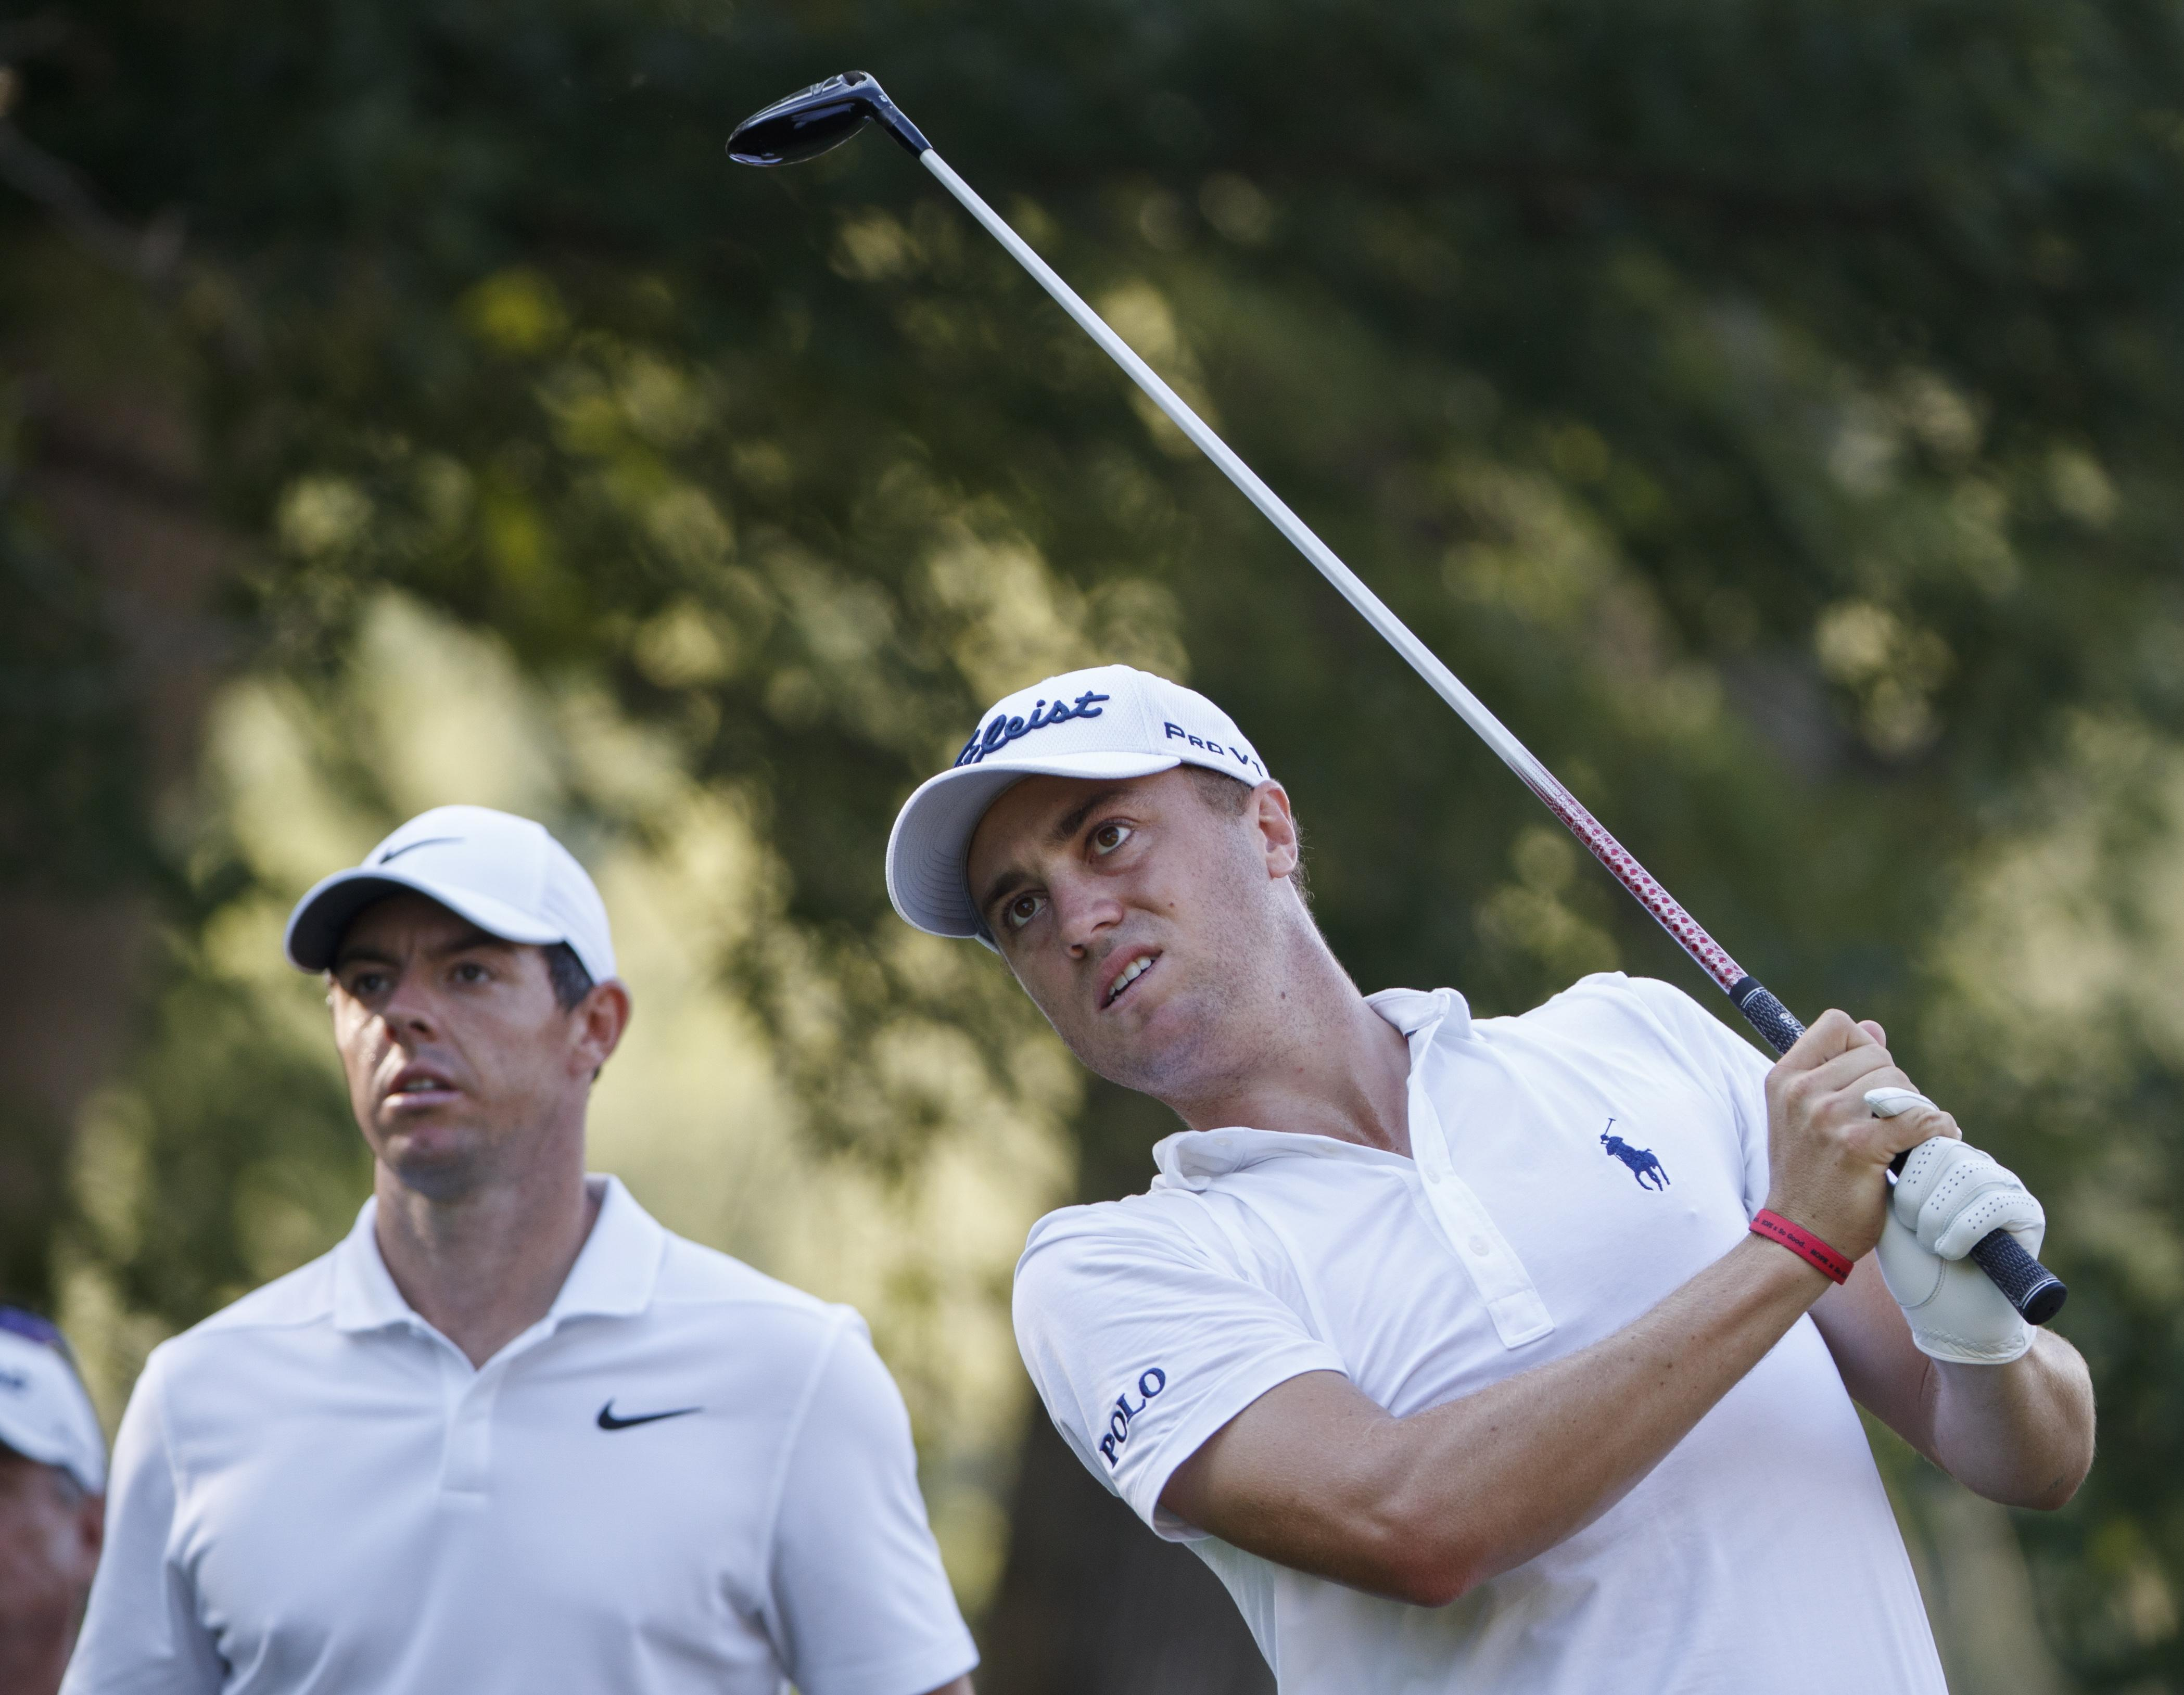 Justin Thomas fired a one-under 69 while Rory McIlroy got it round in level